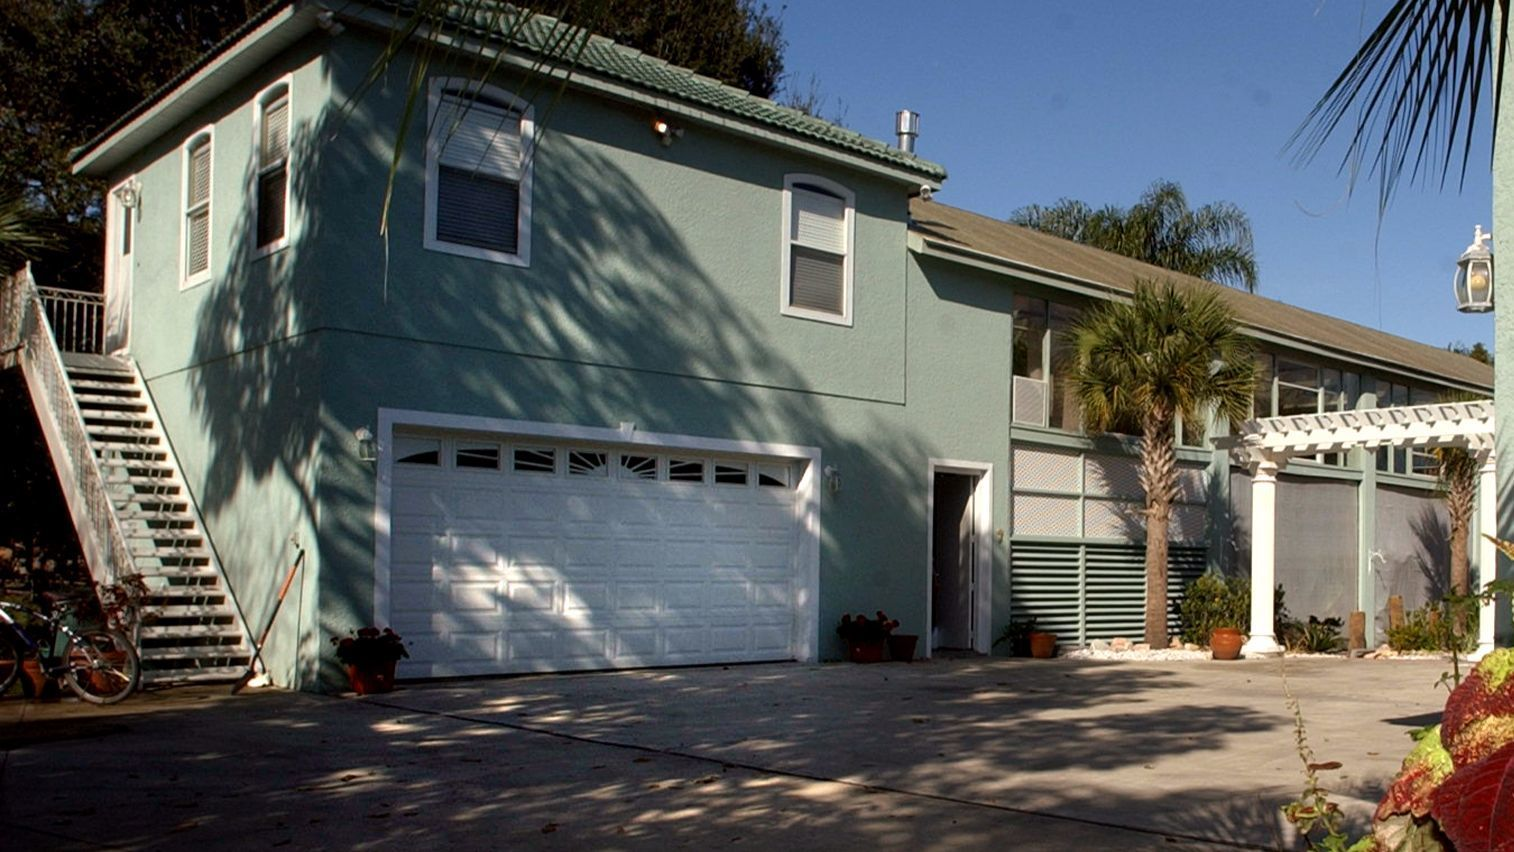 Garage apartments are an increasing focus for Orange and Osceola counties. Bobby Coker/Orlando Sentinel  Boas story ORG XMIT: 14415